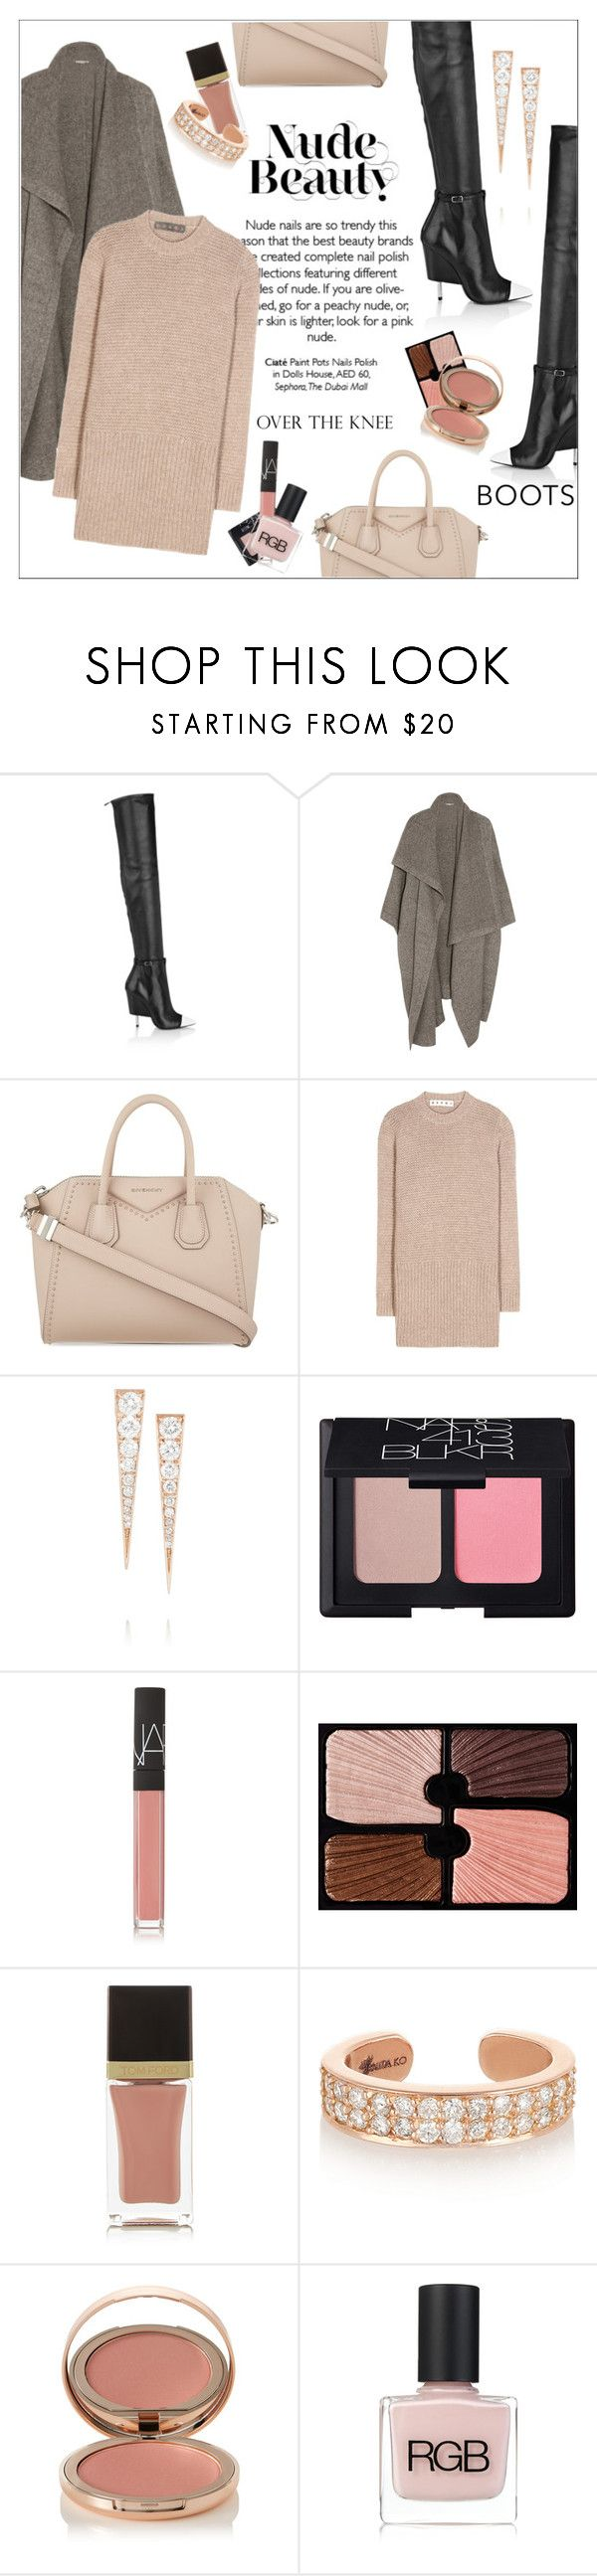 """Rock On: Over-The-Knee Boots"" by amaryllis ❤ liked on Polyvore featuring Givenchy, STELLA McCARTNEY, Marni, Anita Ko, NARS Cosmetics, Sisley, Tom Ford, Charlotte Tilbury and RGB Cosmetics"